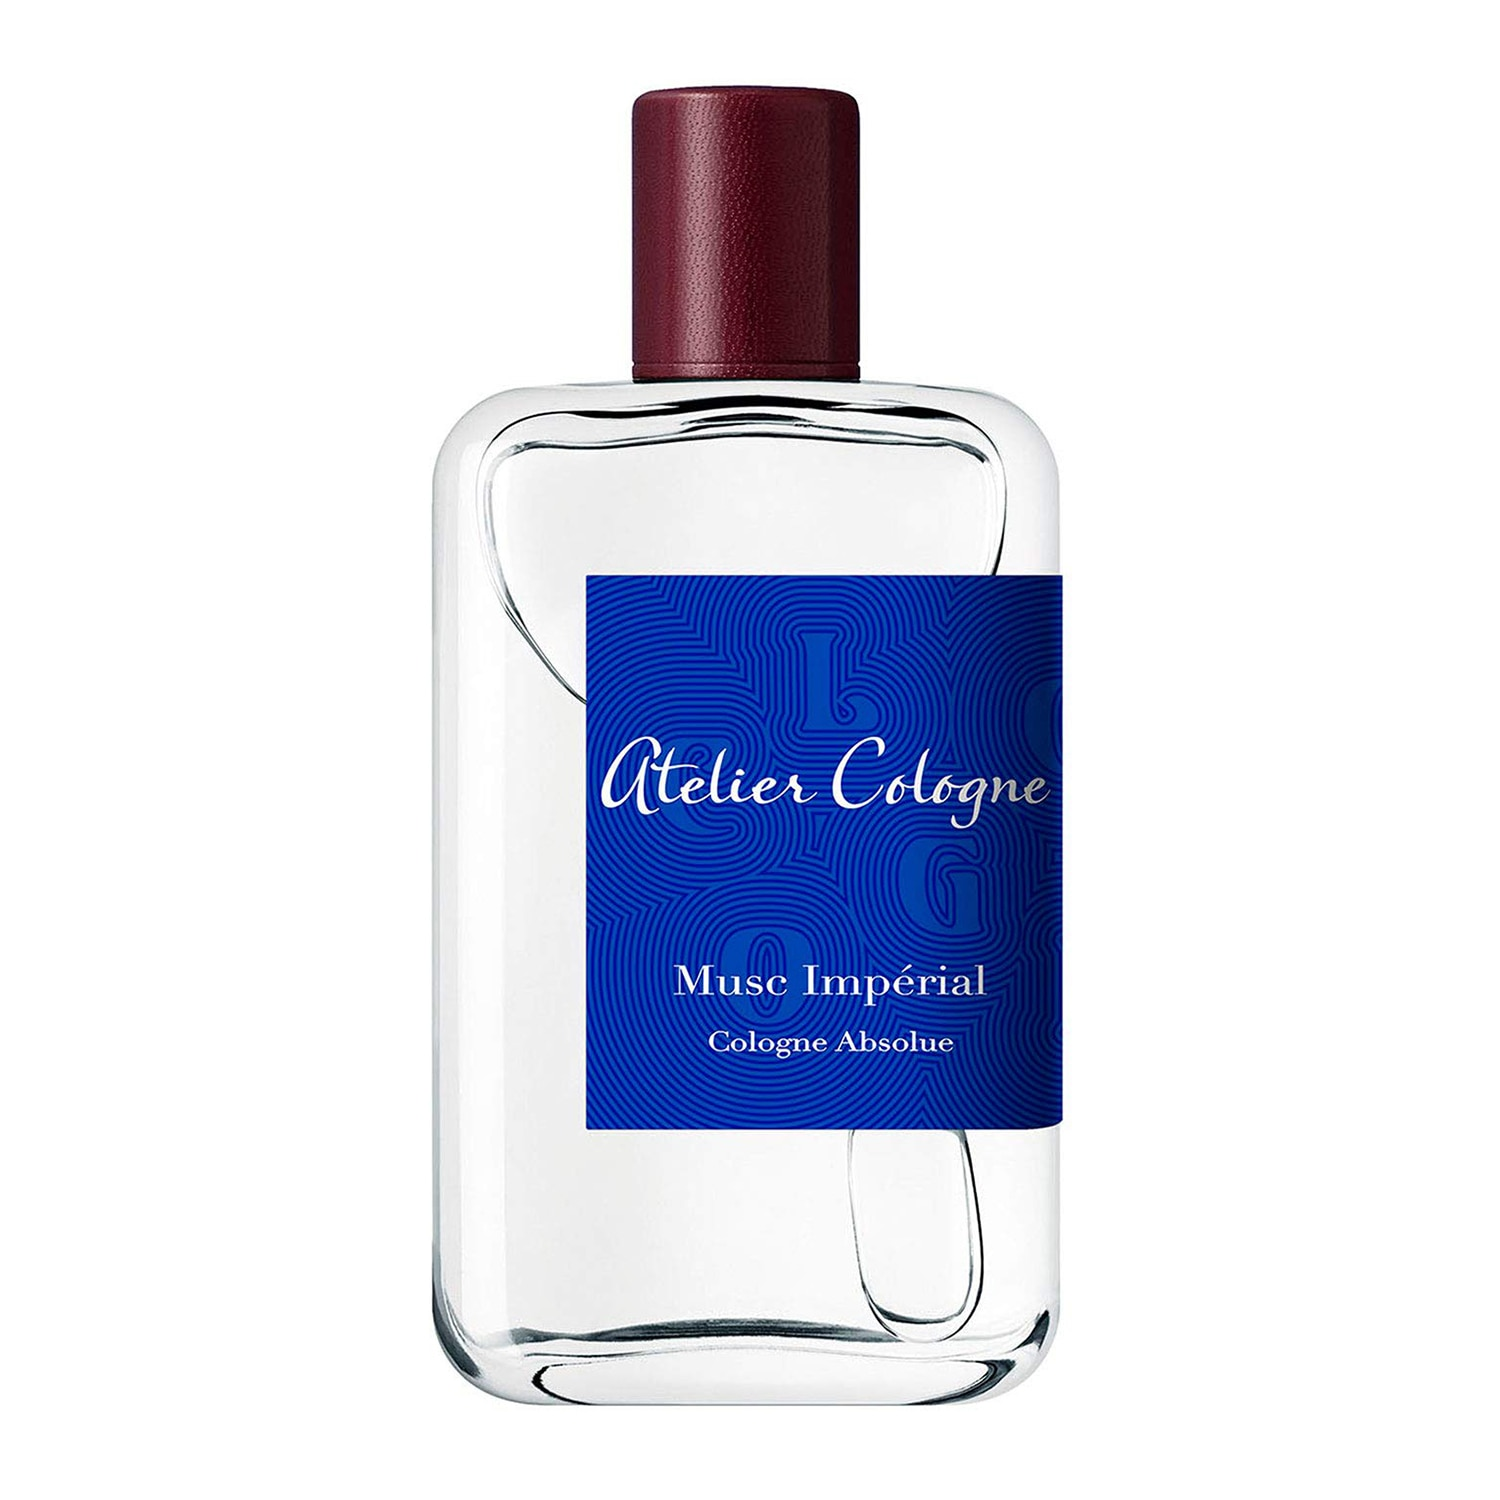 MUSC IMPÉRIAL COLOGNE ABSOLUE 100 ML